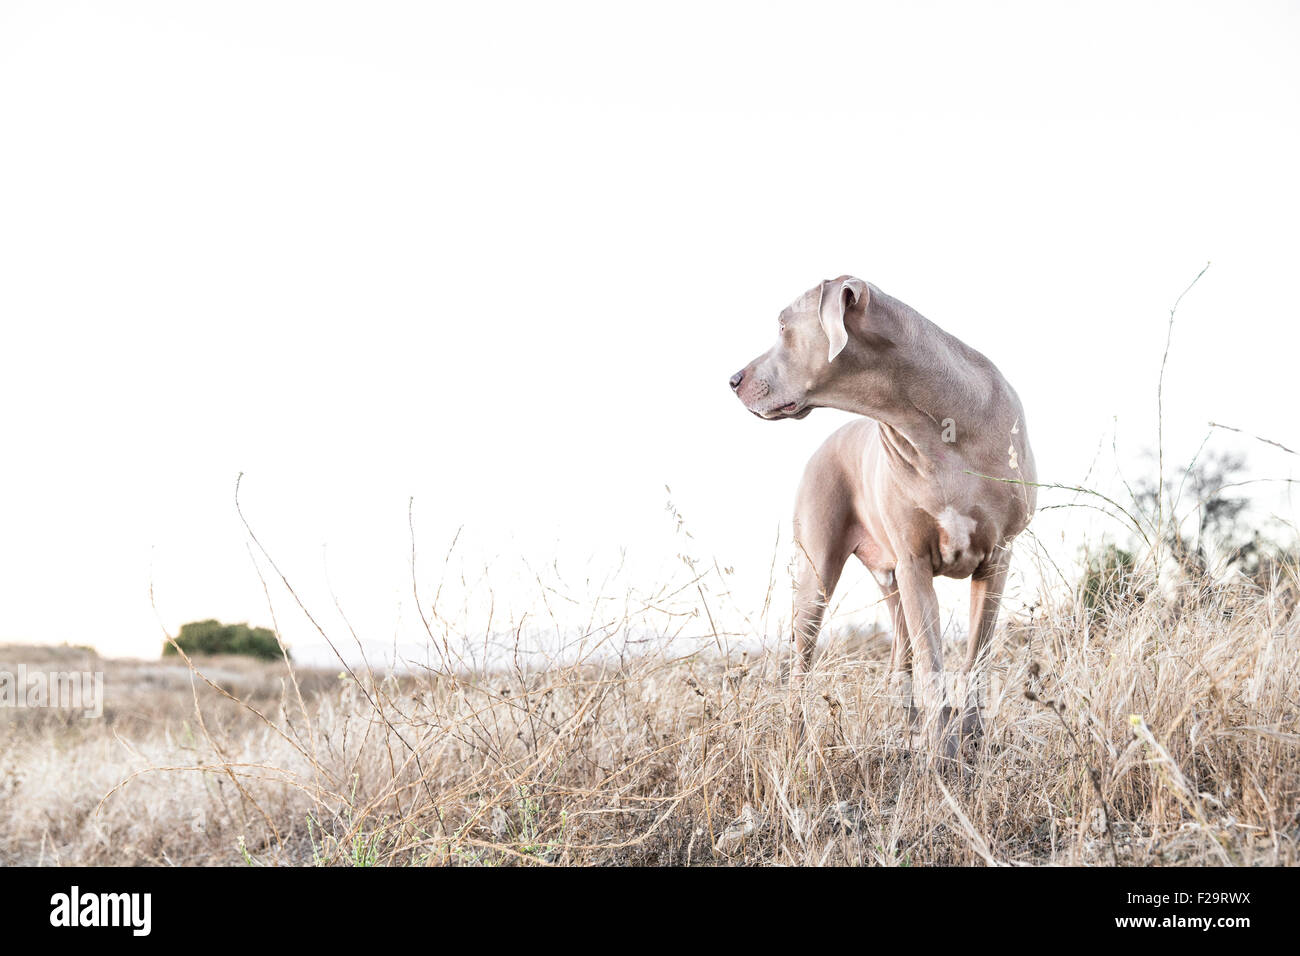 Adult Weimaraner dog standing facing camera, looking off to side in a dry barren field, negative space for copy - Stock Image